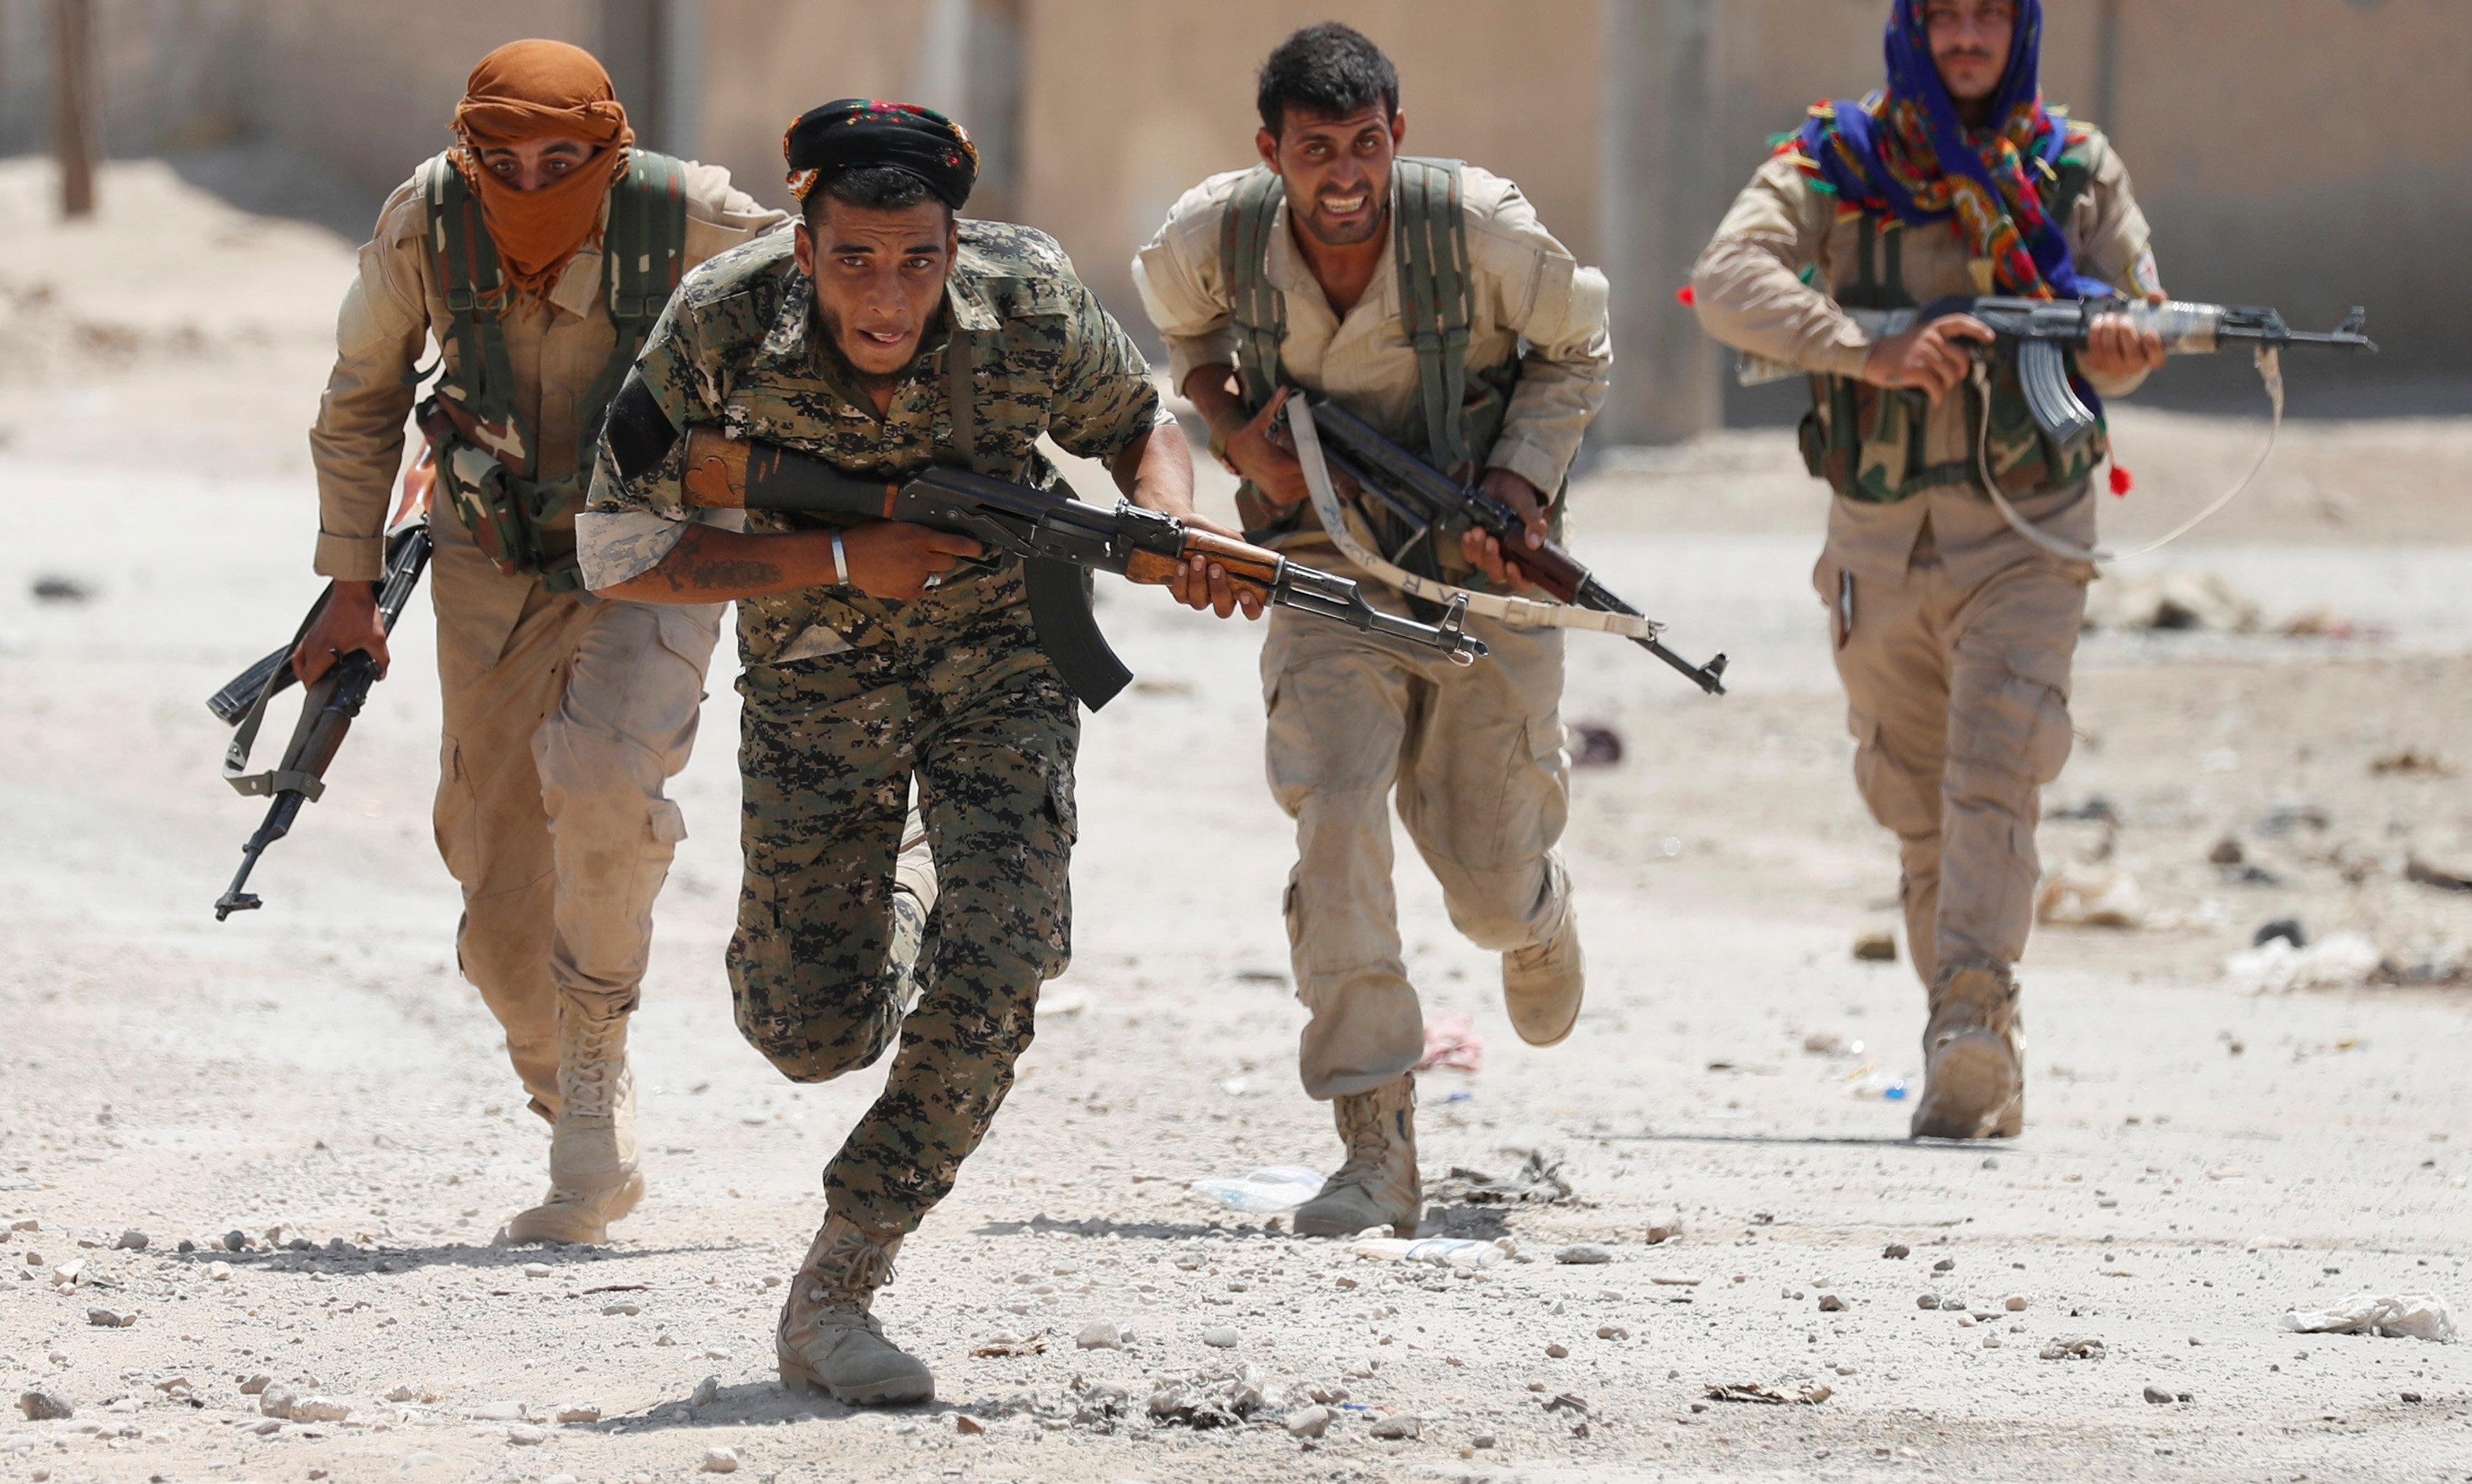 Kurdish forces in Syria will no longer prioritise guarding Isis prisons